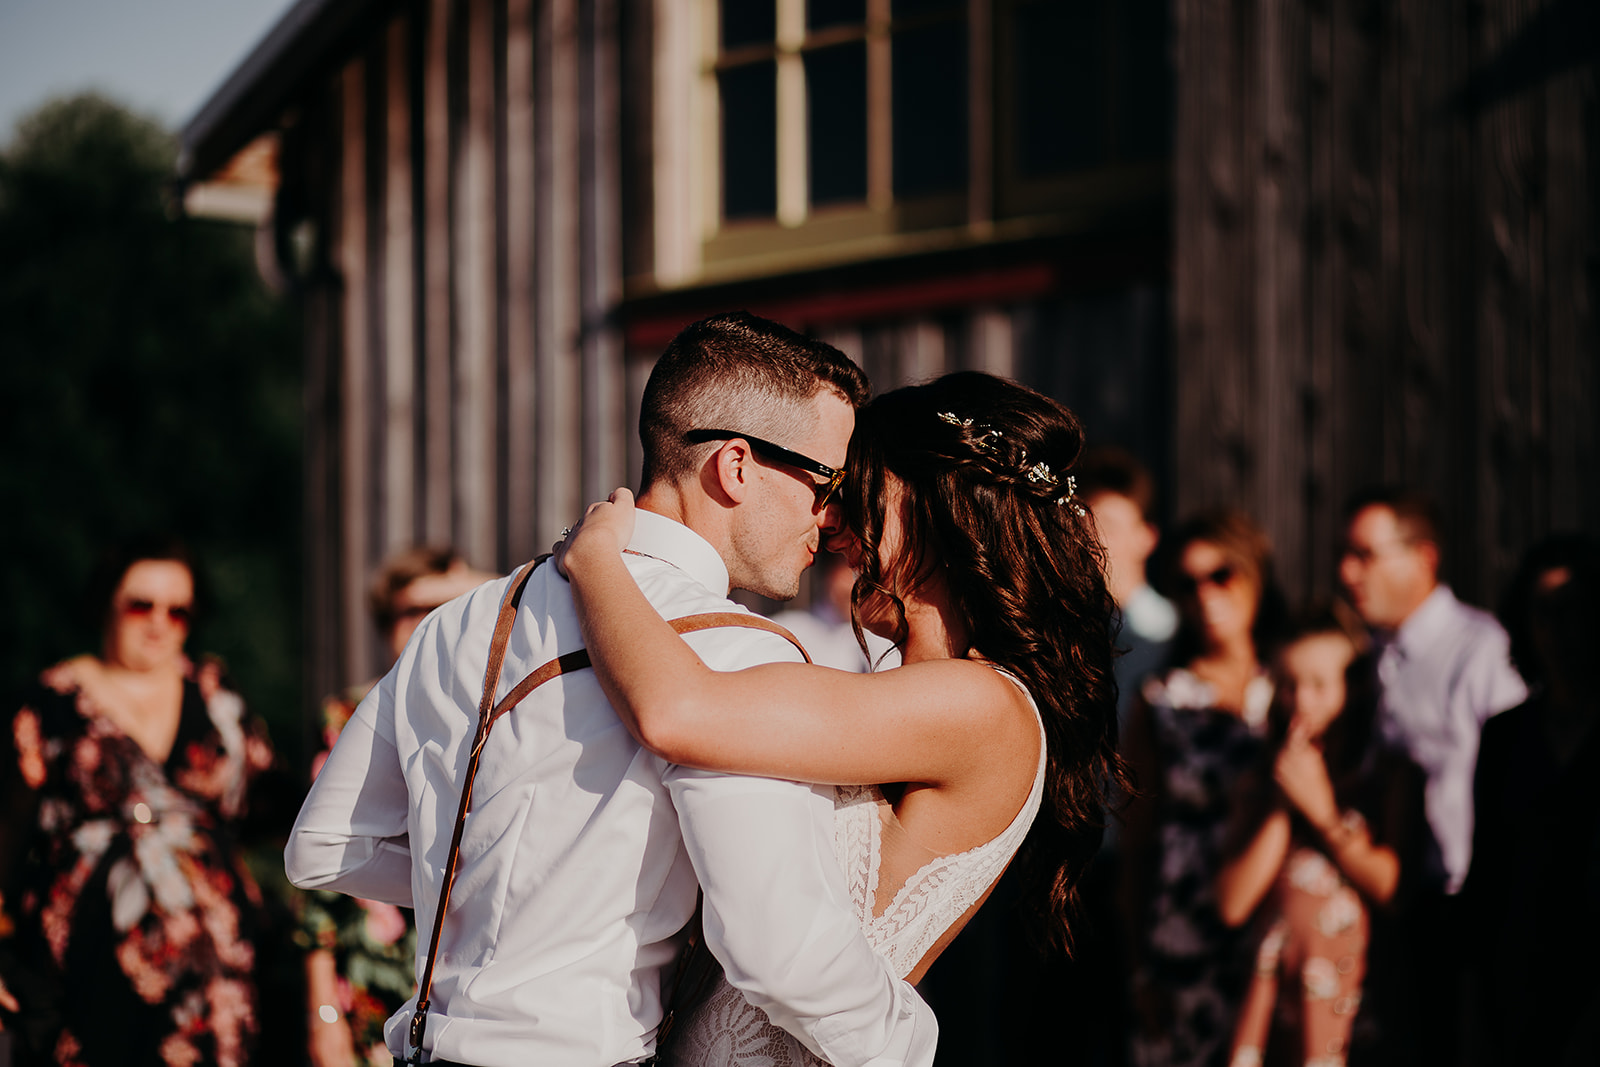 mount-vernon-wedding-salt-box-barn-amanda-riley-megan-gallagher-photography-1_(286_of_351).jpg